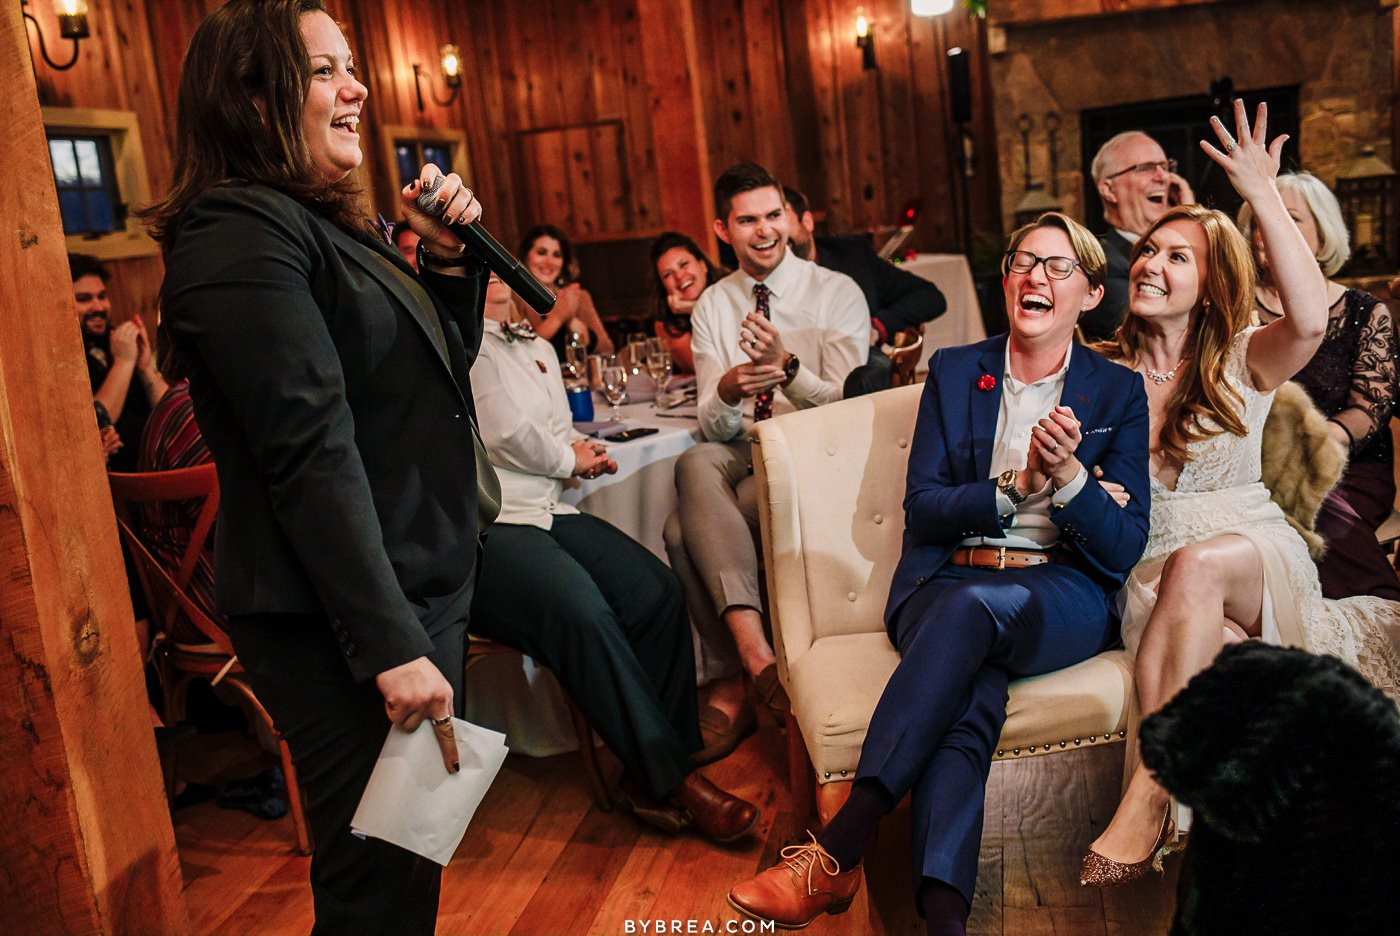 Candid moment during LGBTQ wedding Baltimore wedding photography